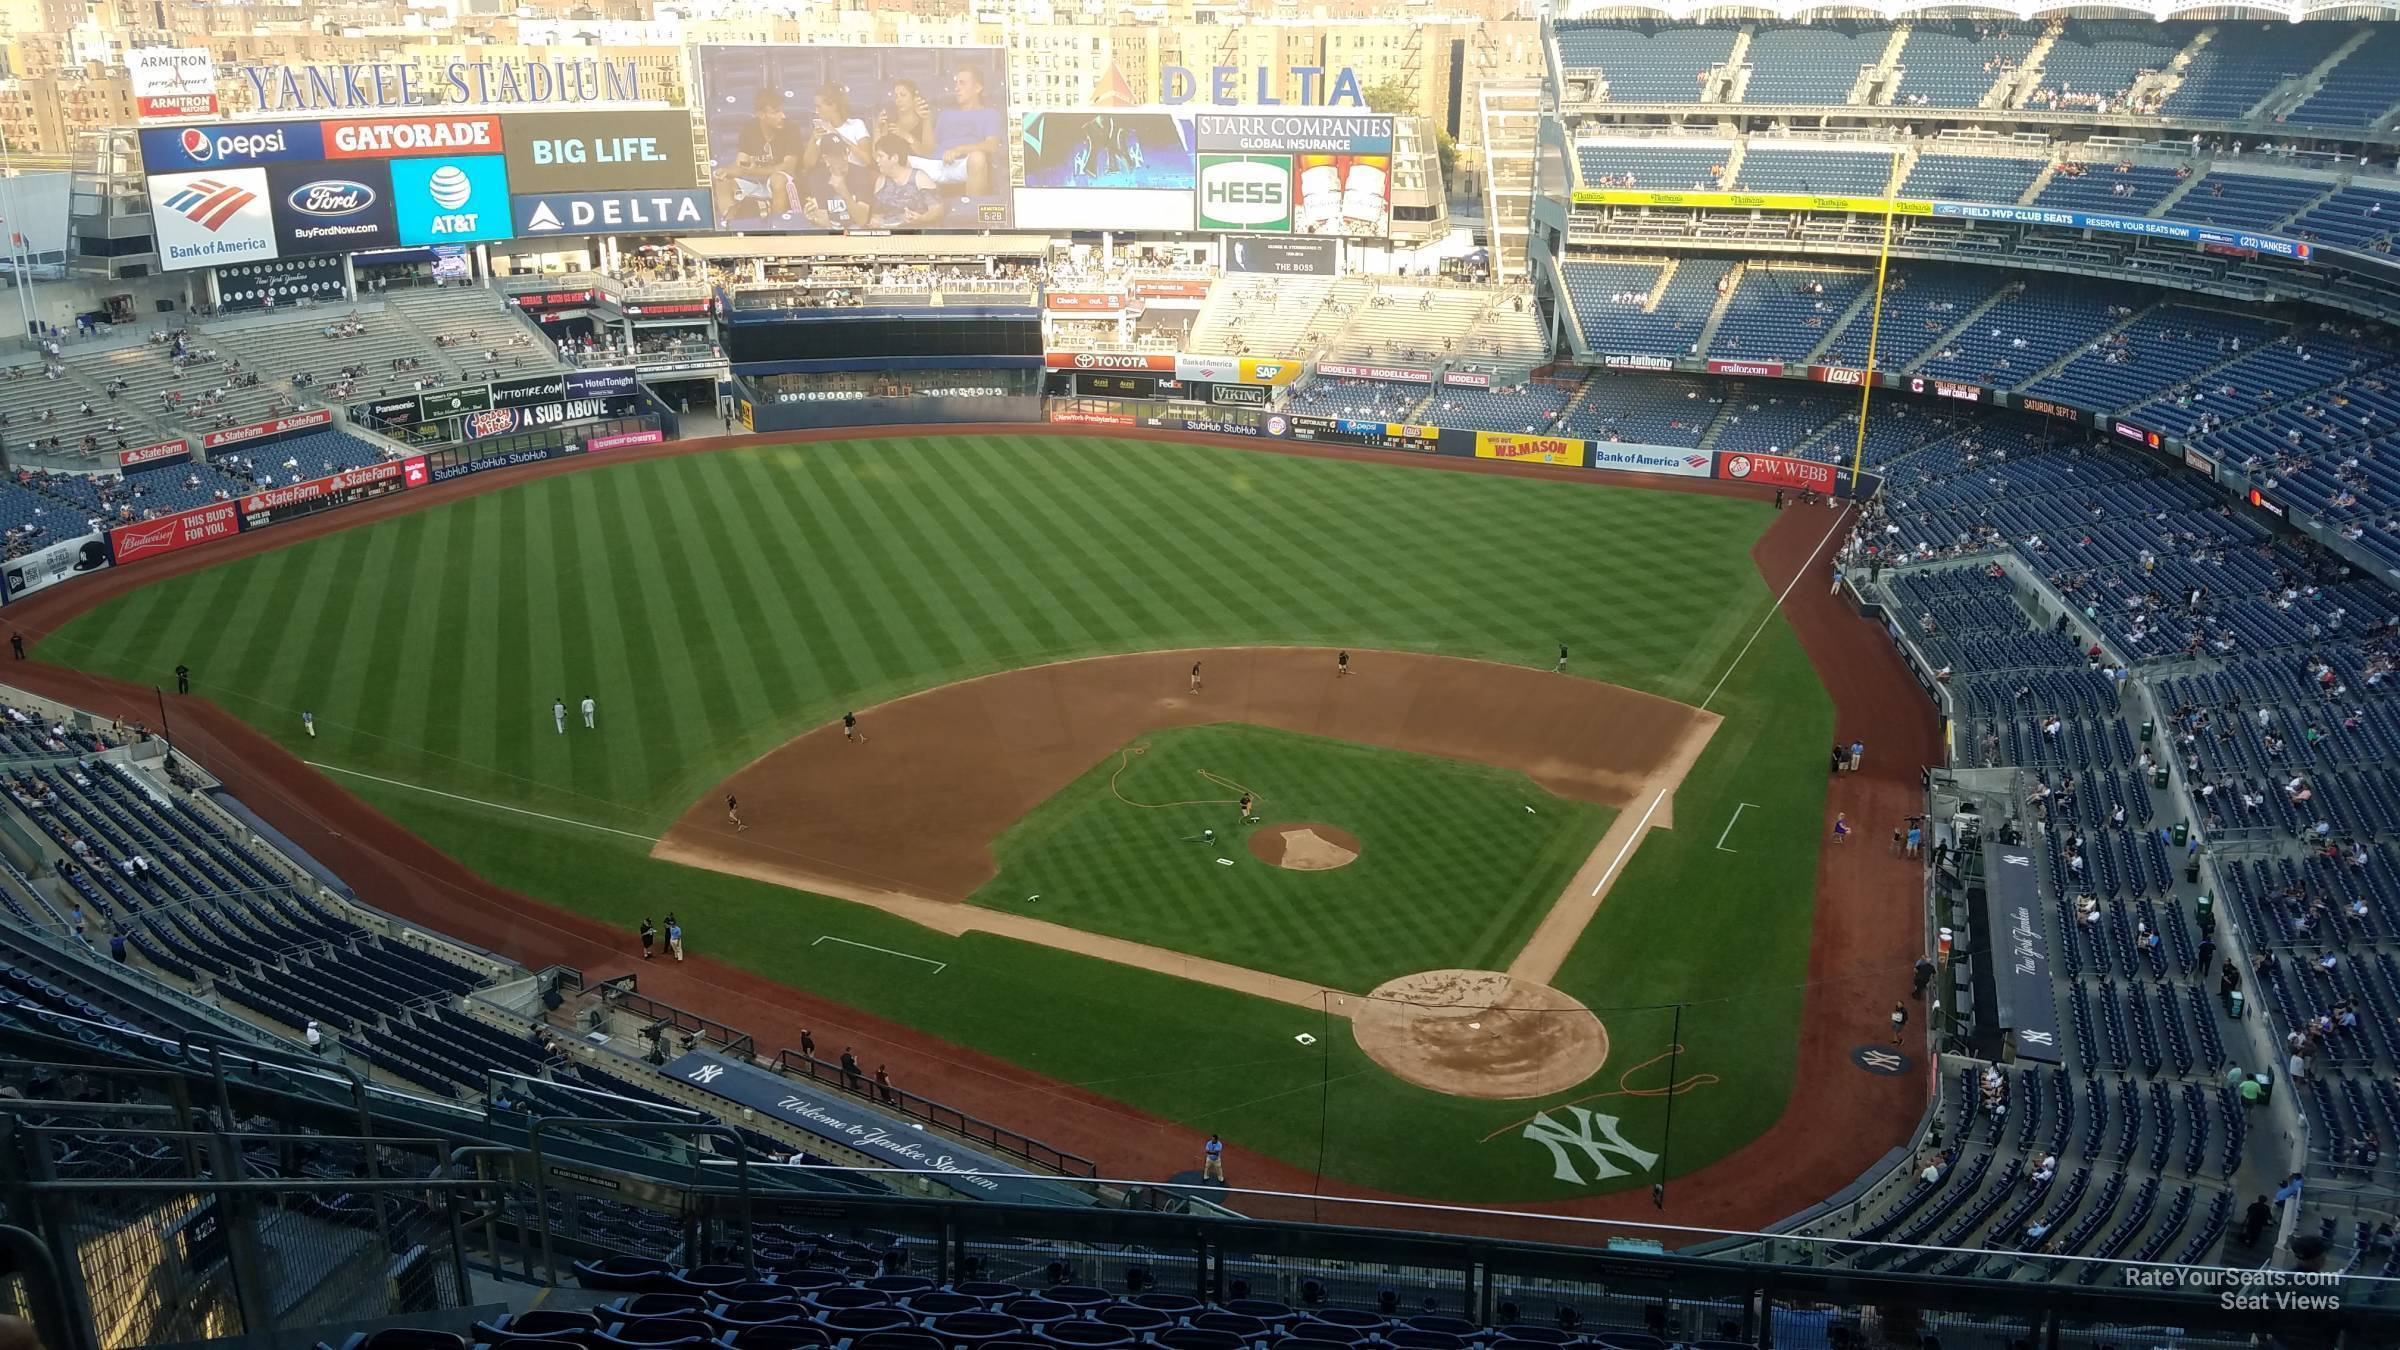 Section 421 seat view